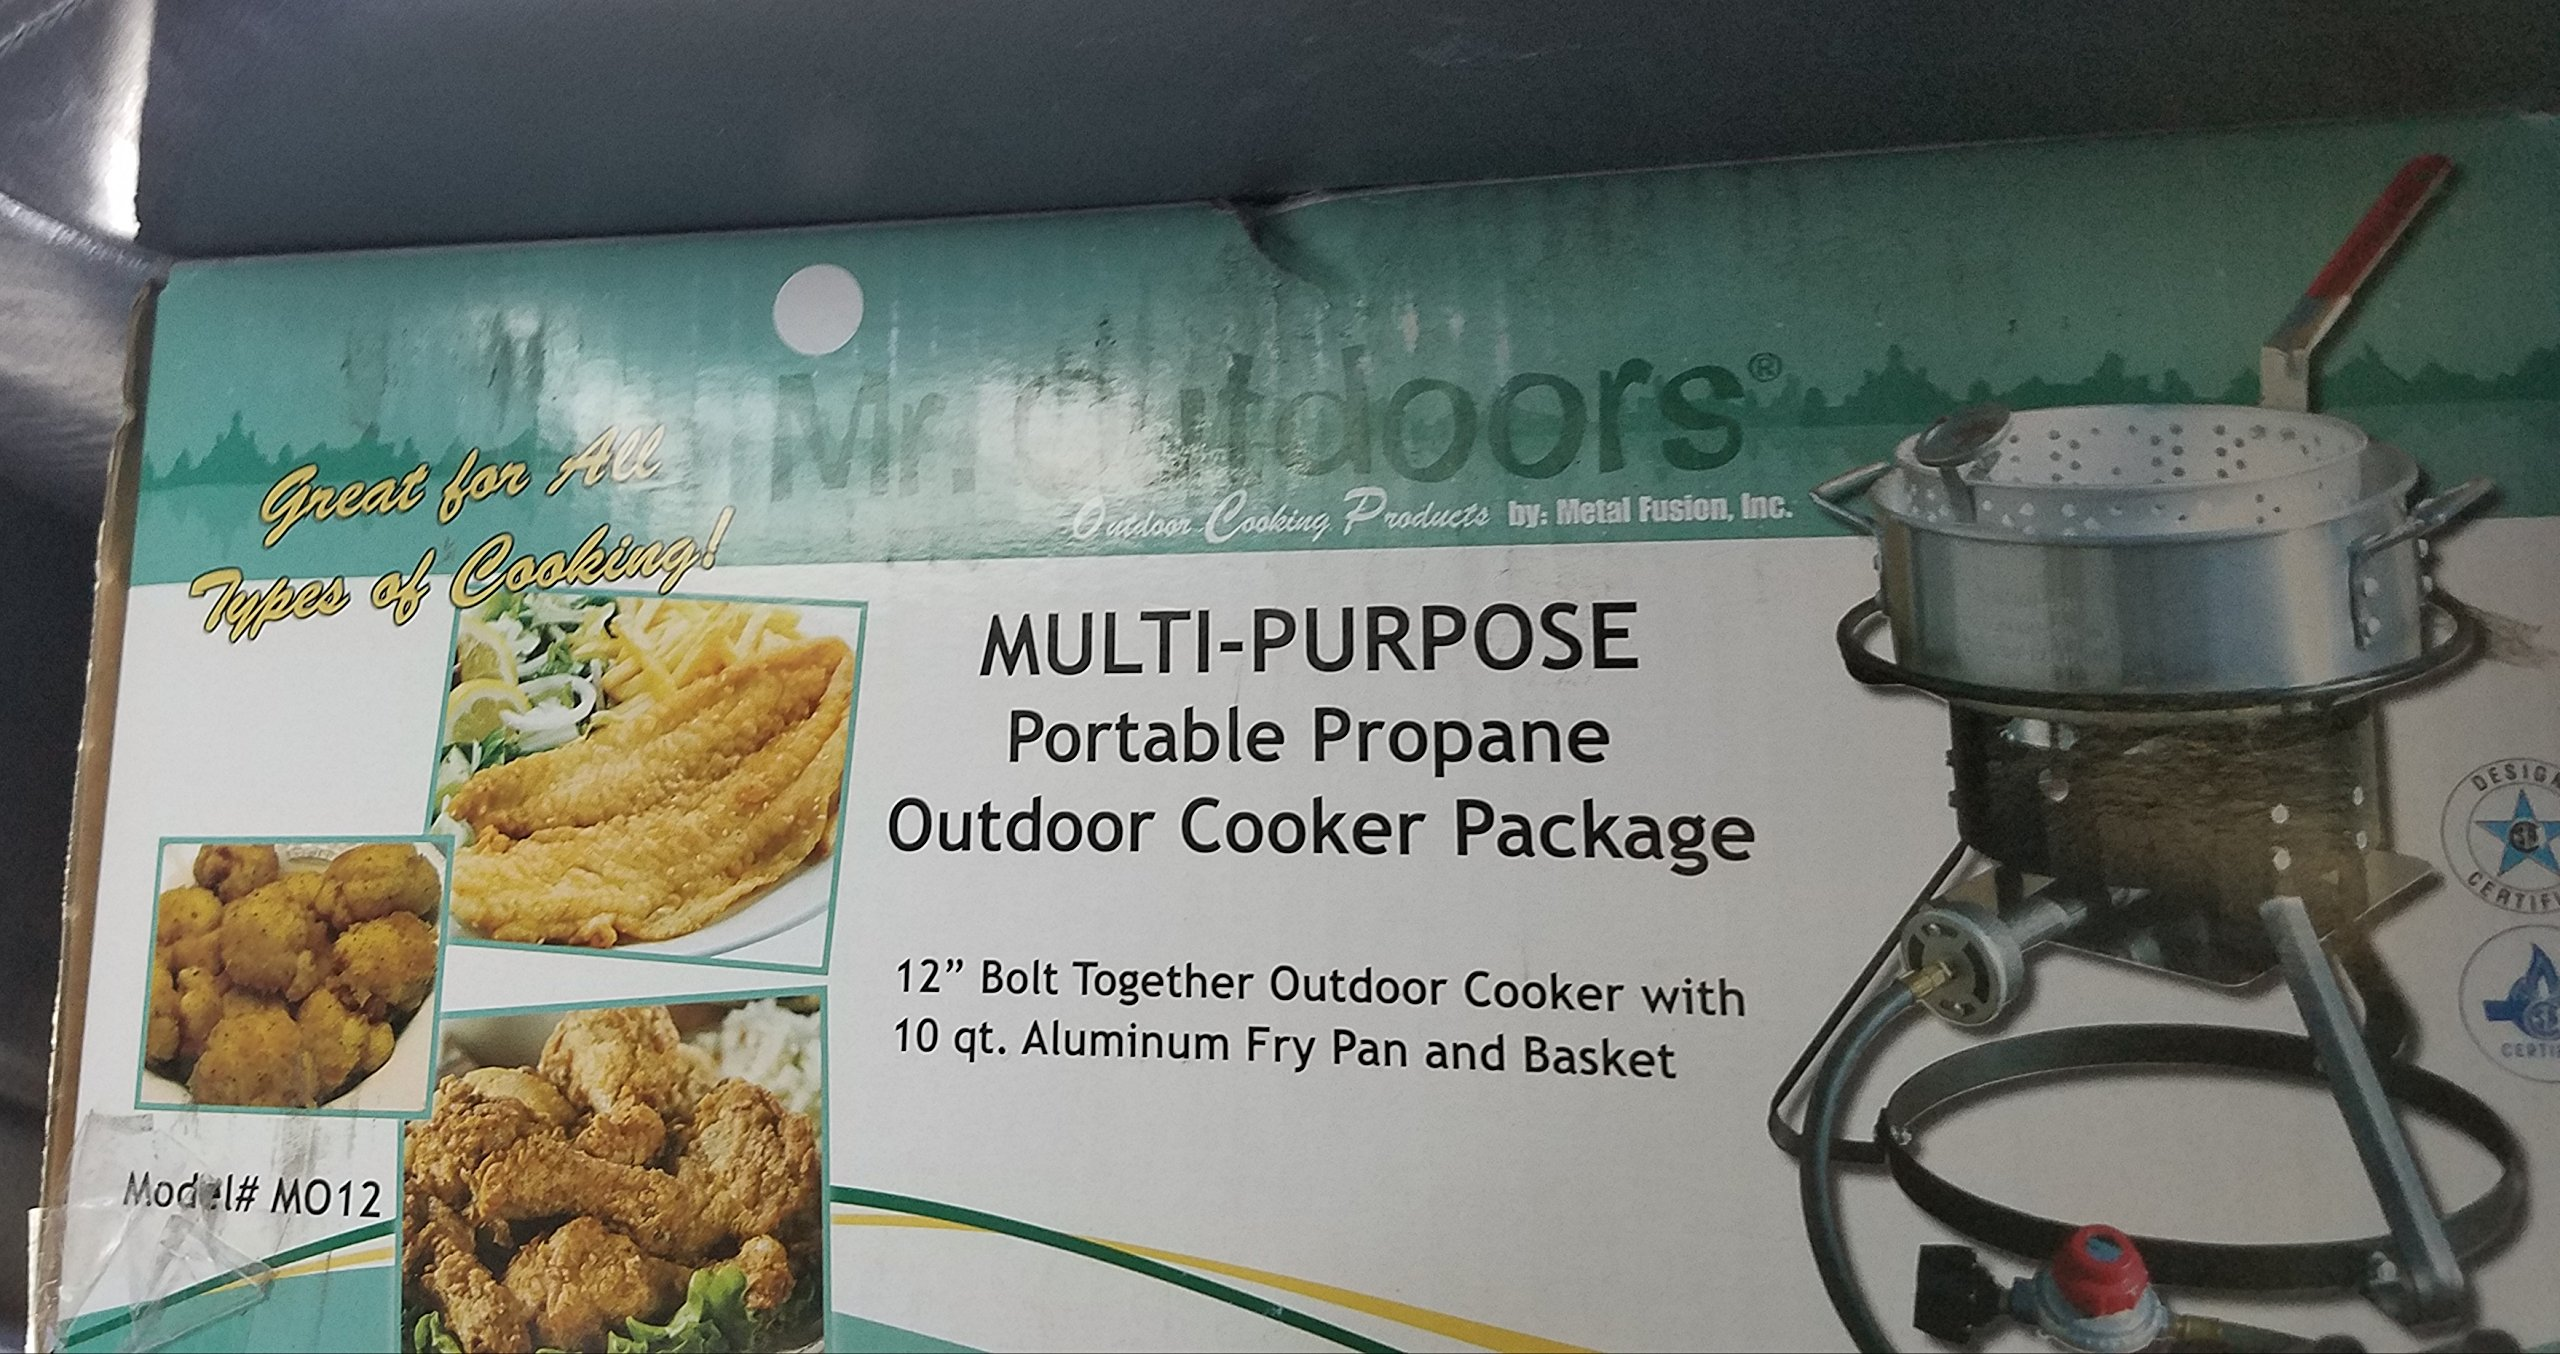 10 qt. Aluminum Fry Pan Multi-Purpose Outdoor Cooker Package by Mr. Outdoor